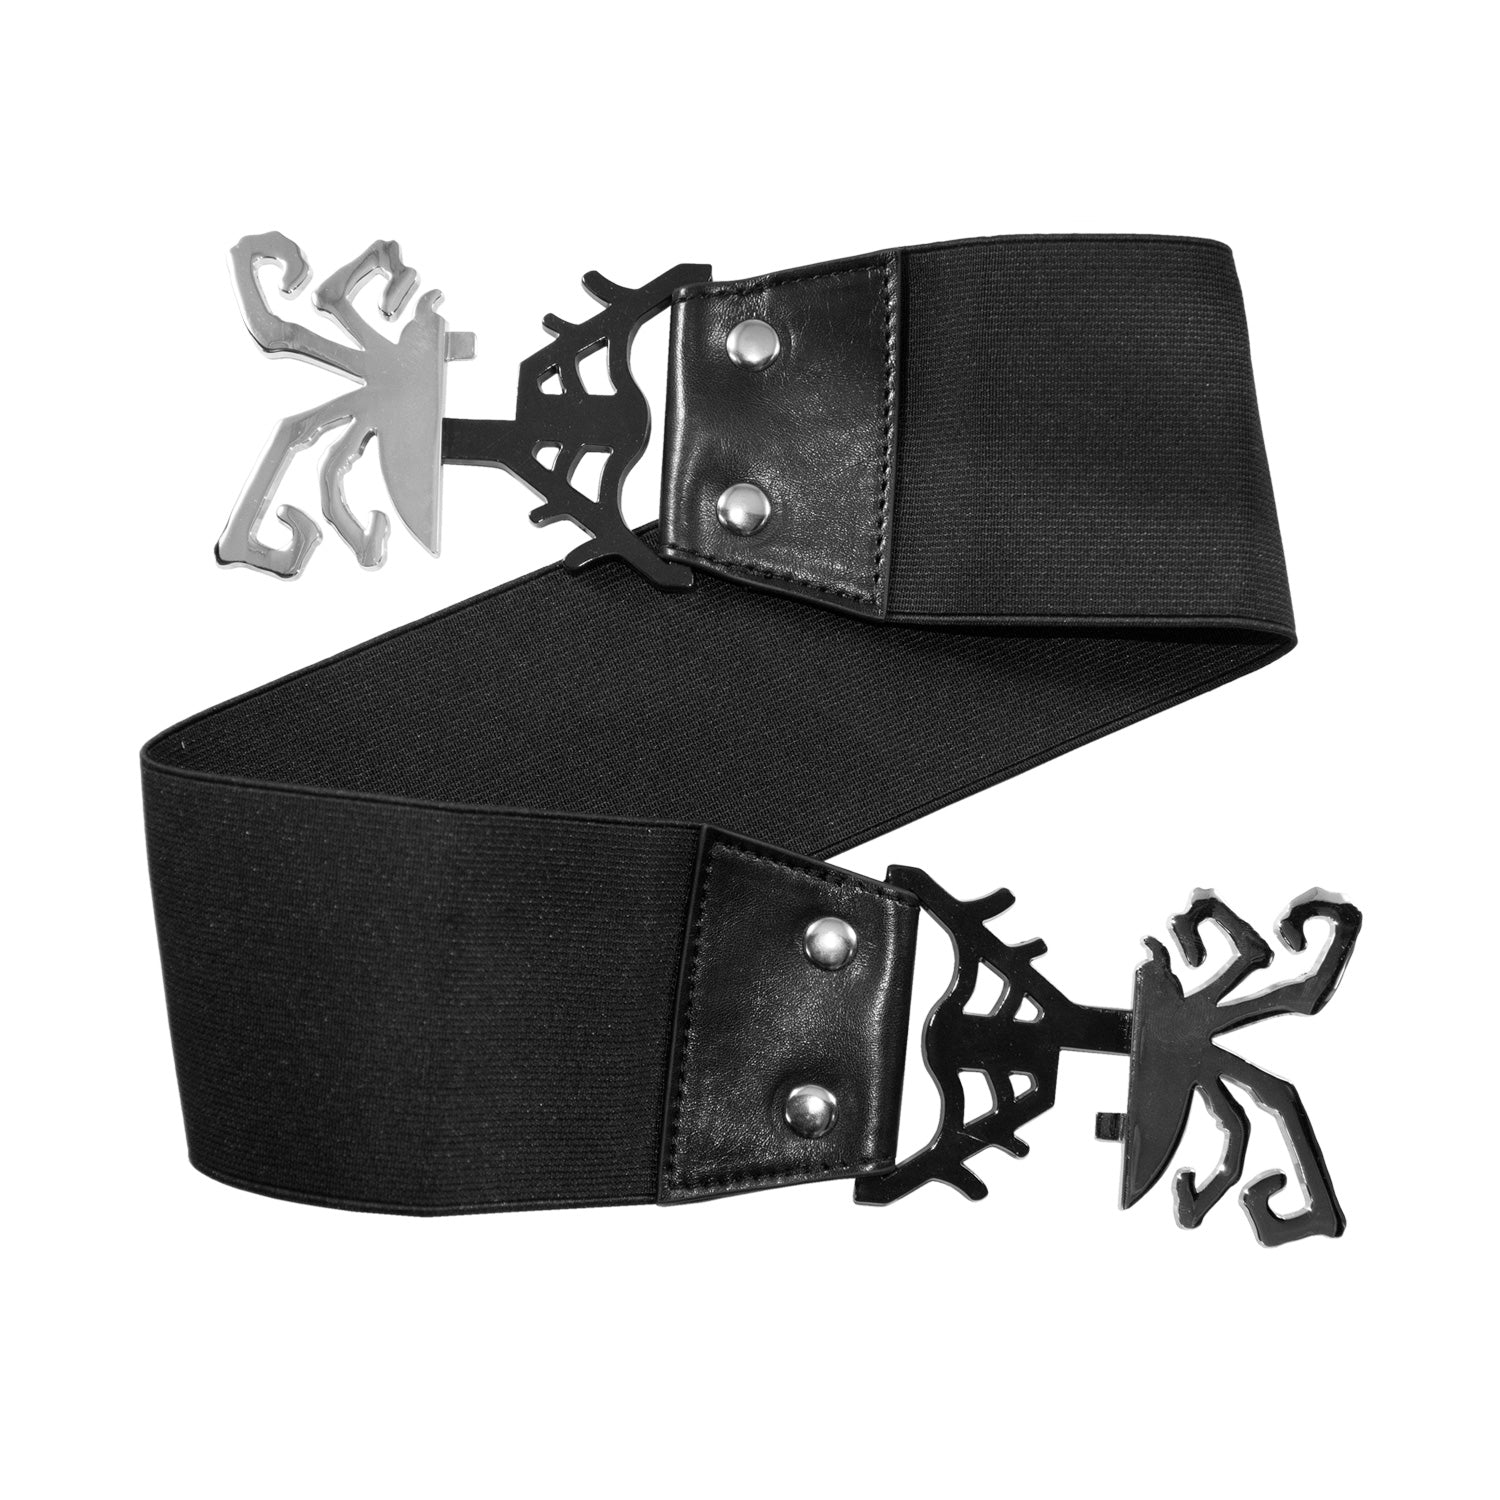 Elastic Waist Belt Spiderweb Black